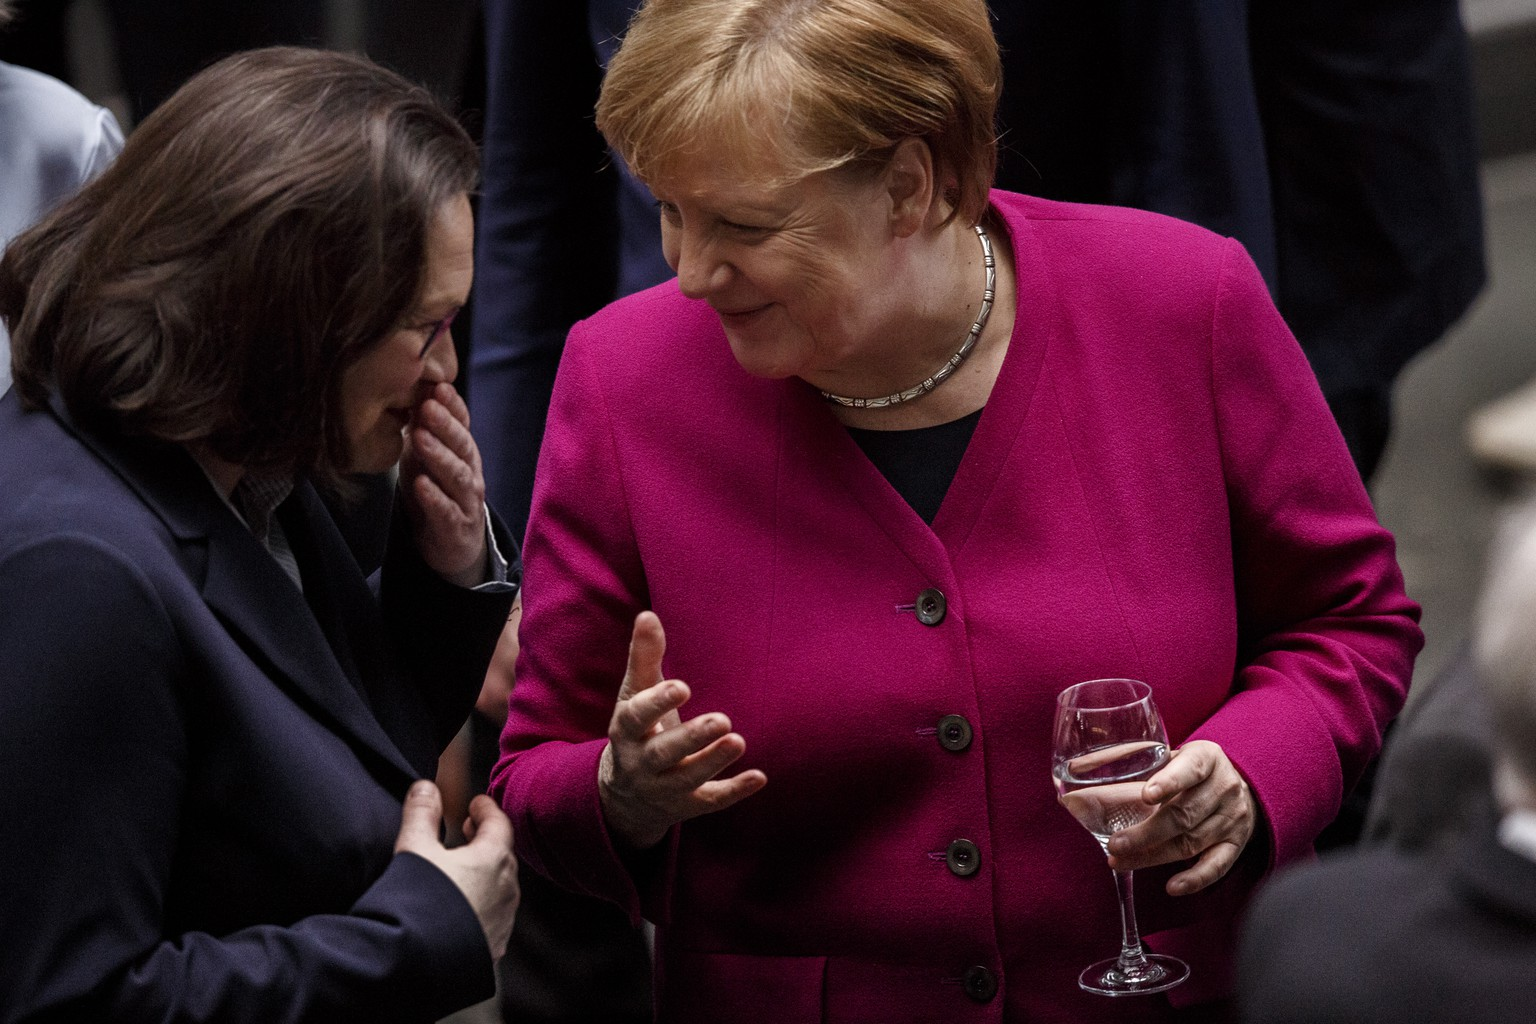 BERLIN, GERMANY - MARCH 12: German Chancellor and Chairwoman of the German Christian Democrats (CDU) Angela Merkel (R) and Andrea Nahles, party leader of the German Social Democrats (SPD), talk after the signing the coalition contract between the three parties to create the next German government on March 12, 2018 in Berlin, Germany. Today's signing follow months of arduous negotiations following federal elections last September. Merkel is due to be elected as chancellor for her fourth term in a session of the Bundestag this coming Wednesday. (Photo by Carsten Koall/Getty Images)